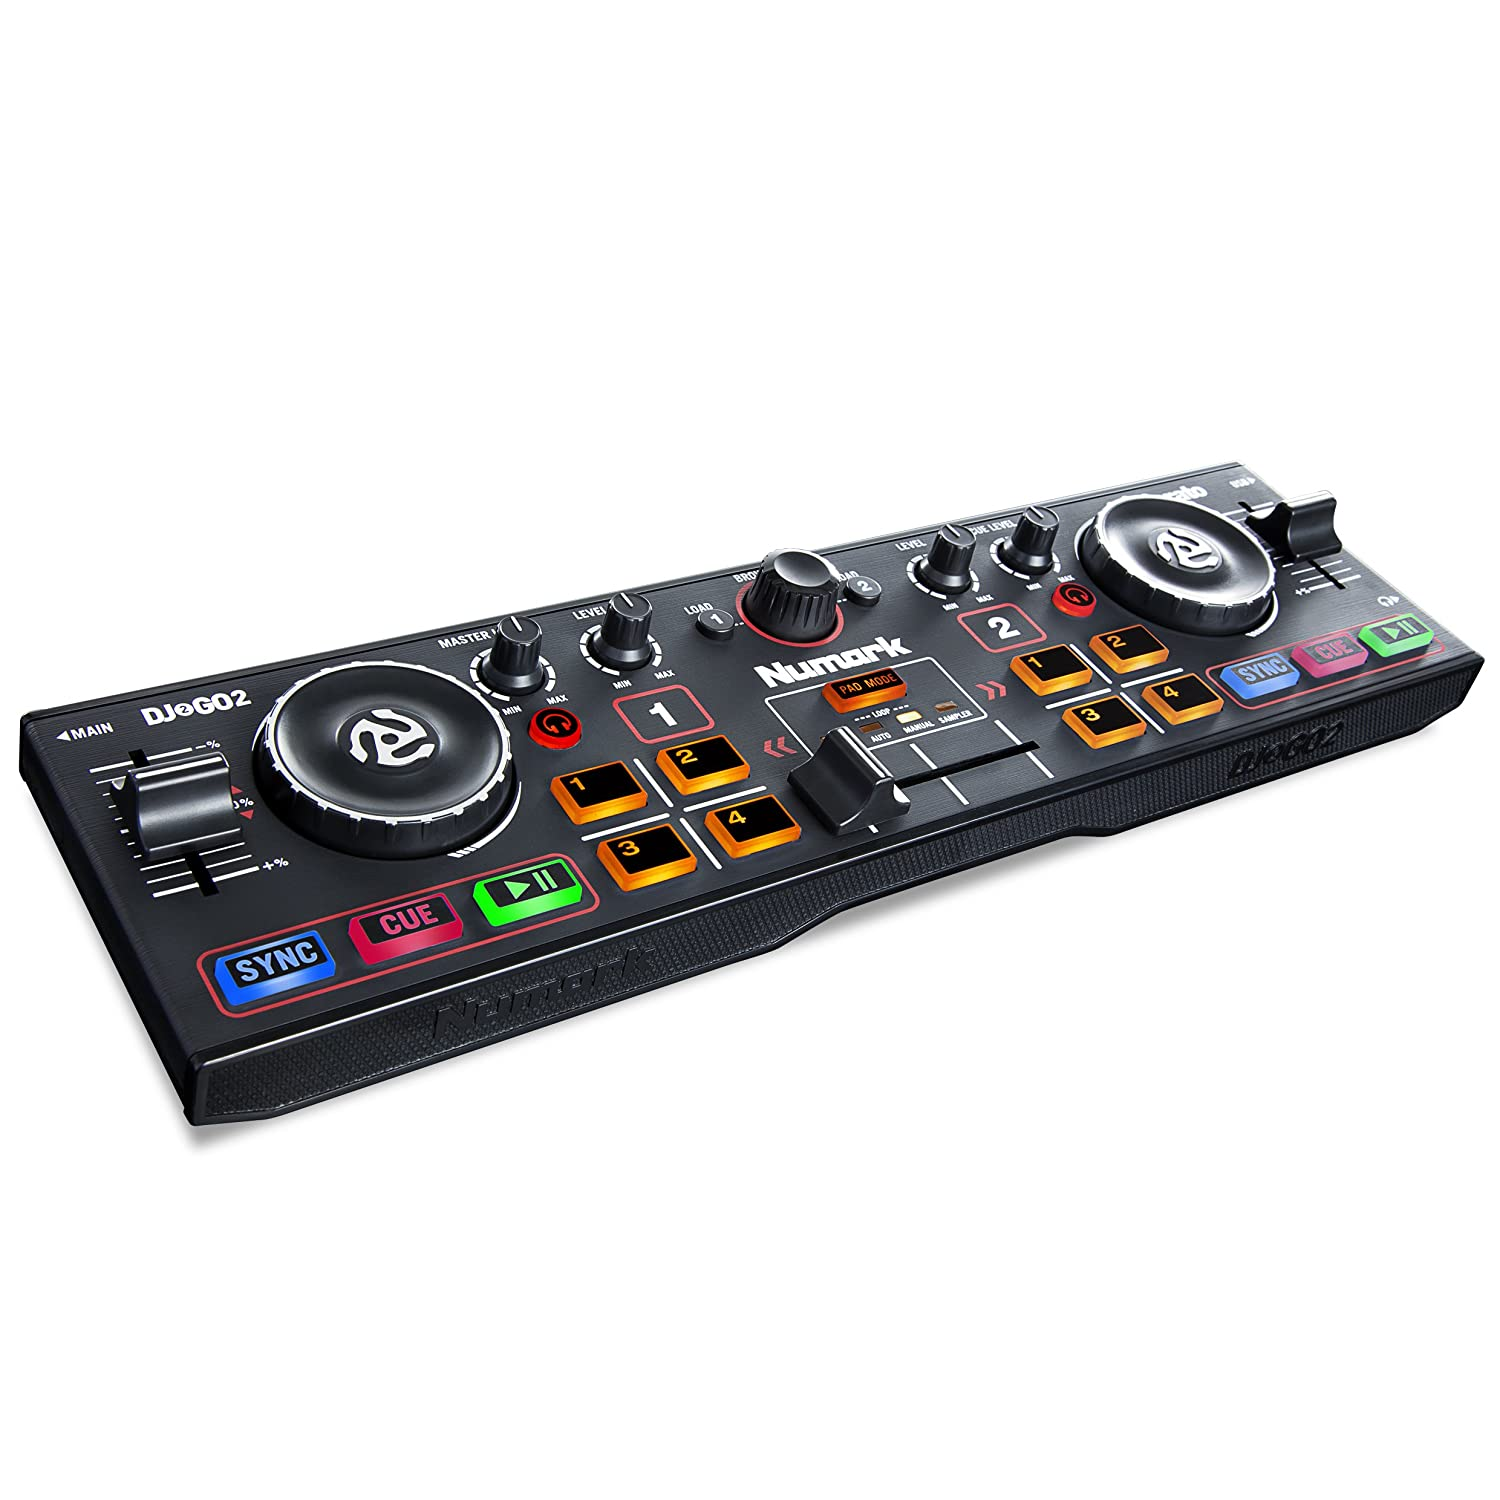 Numark DJ2GO2 | Pocket DJ Controller with Audio Interface and Serato DJ Lite Software Download inMusic Brands Inc.